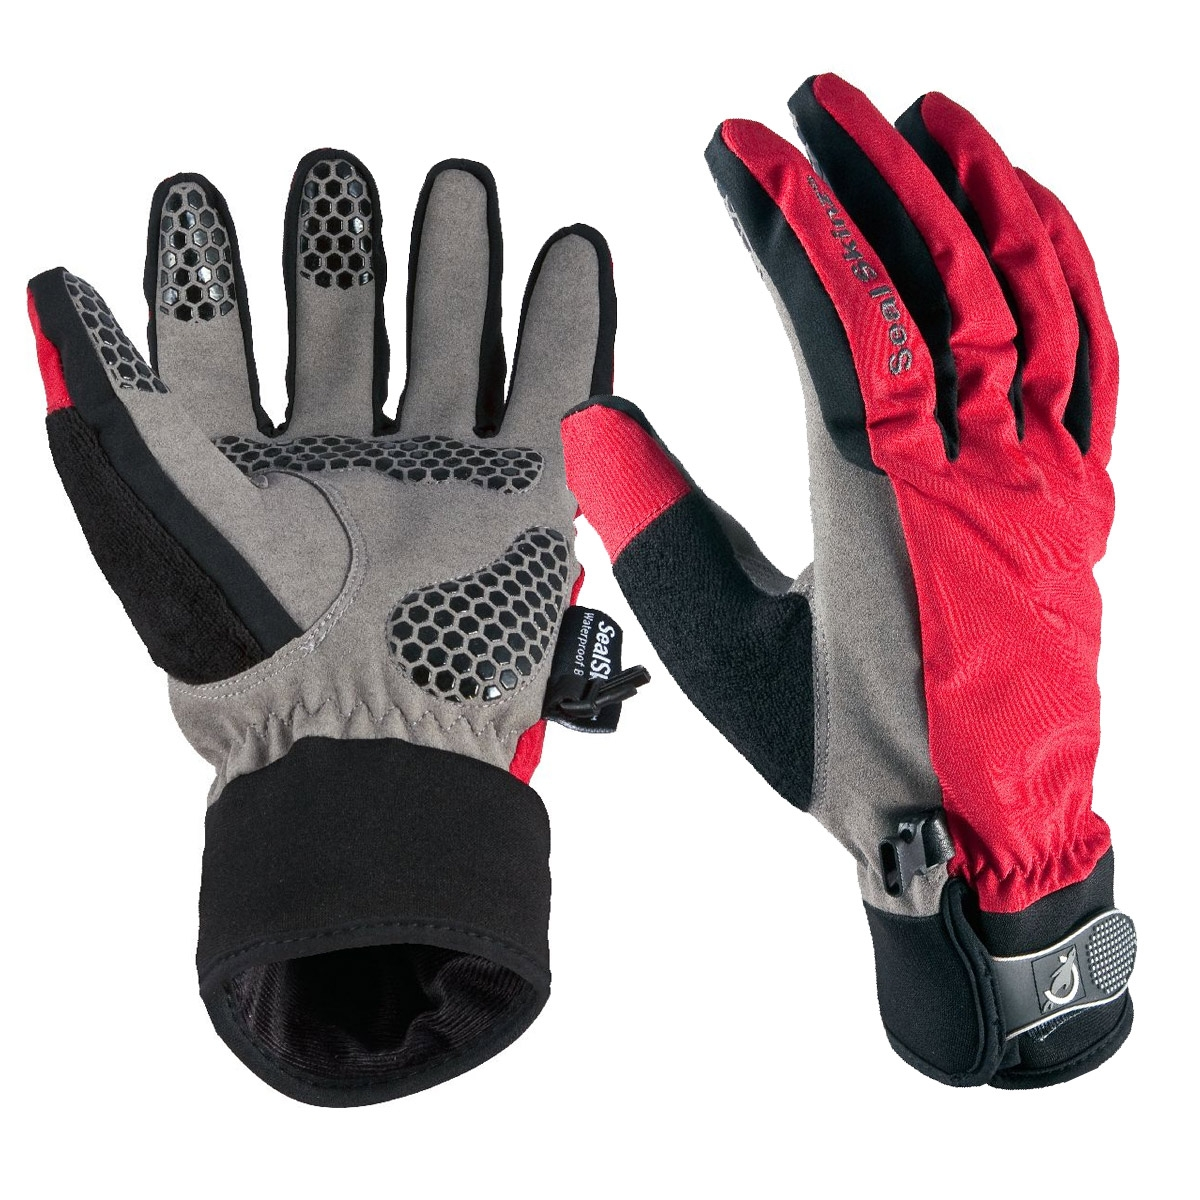 Large SealSkinz All Weather Cycle Gloves